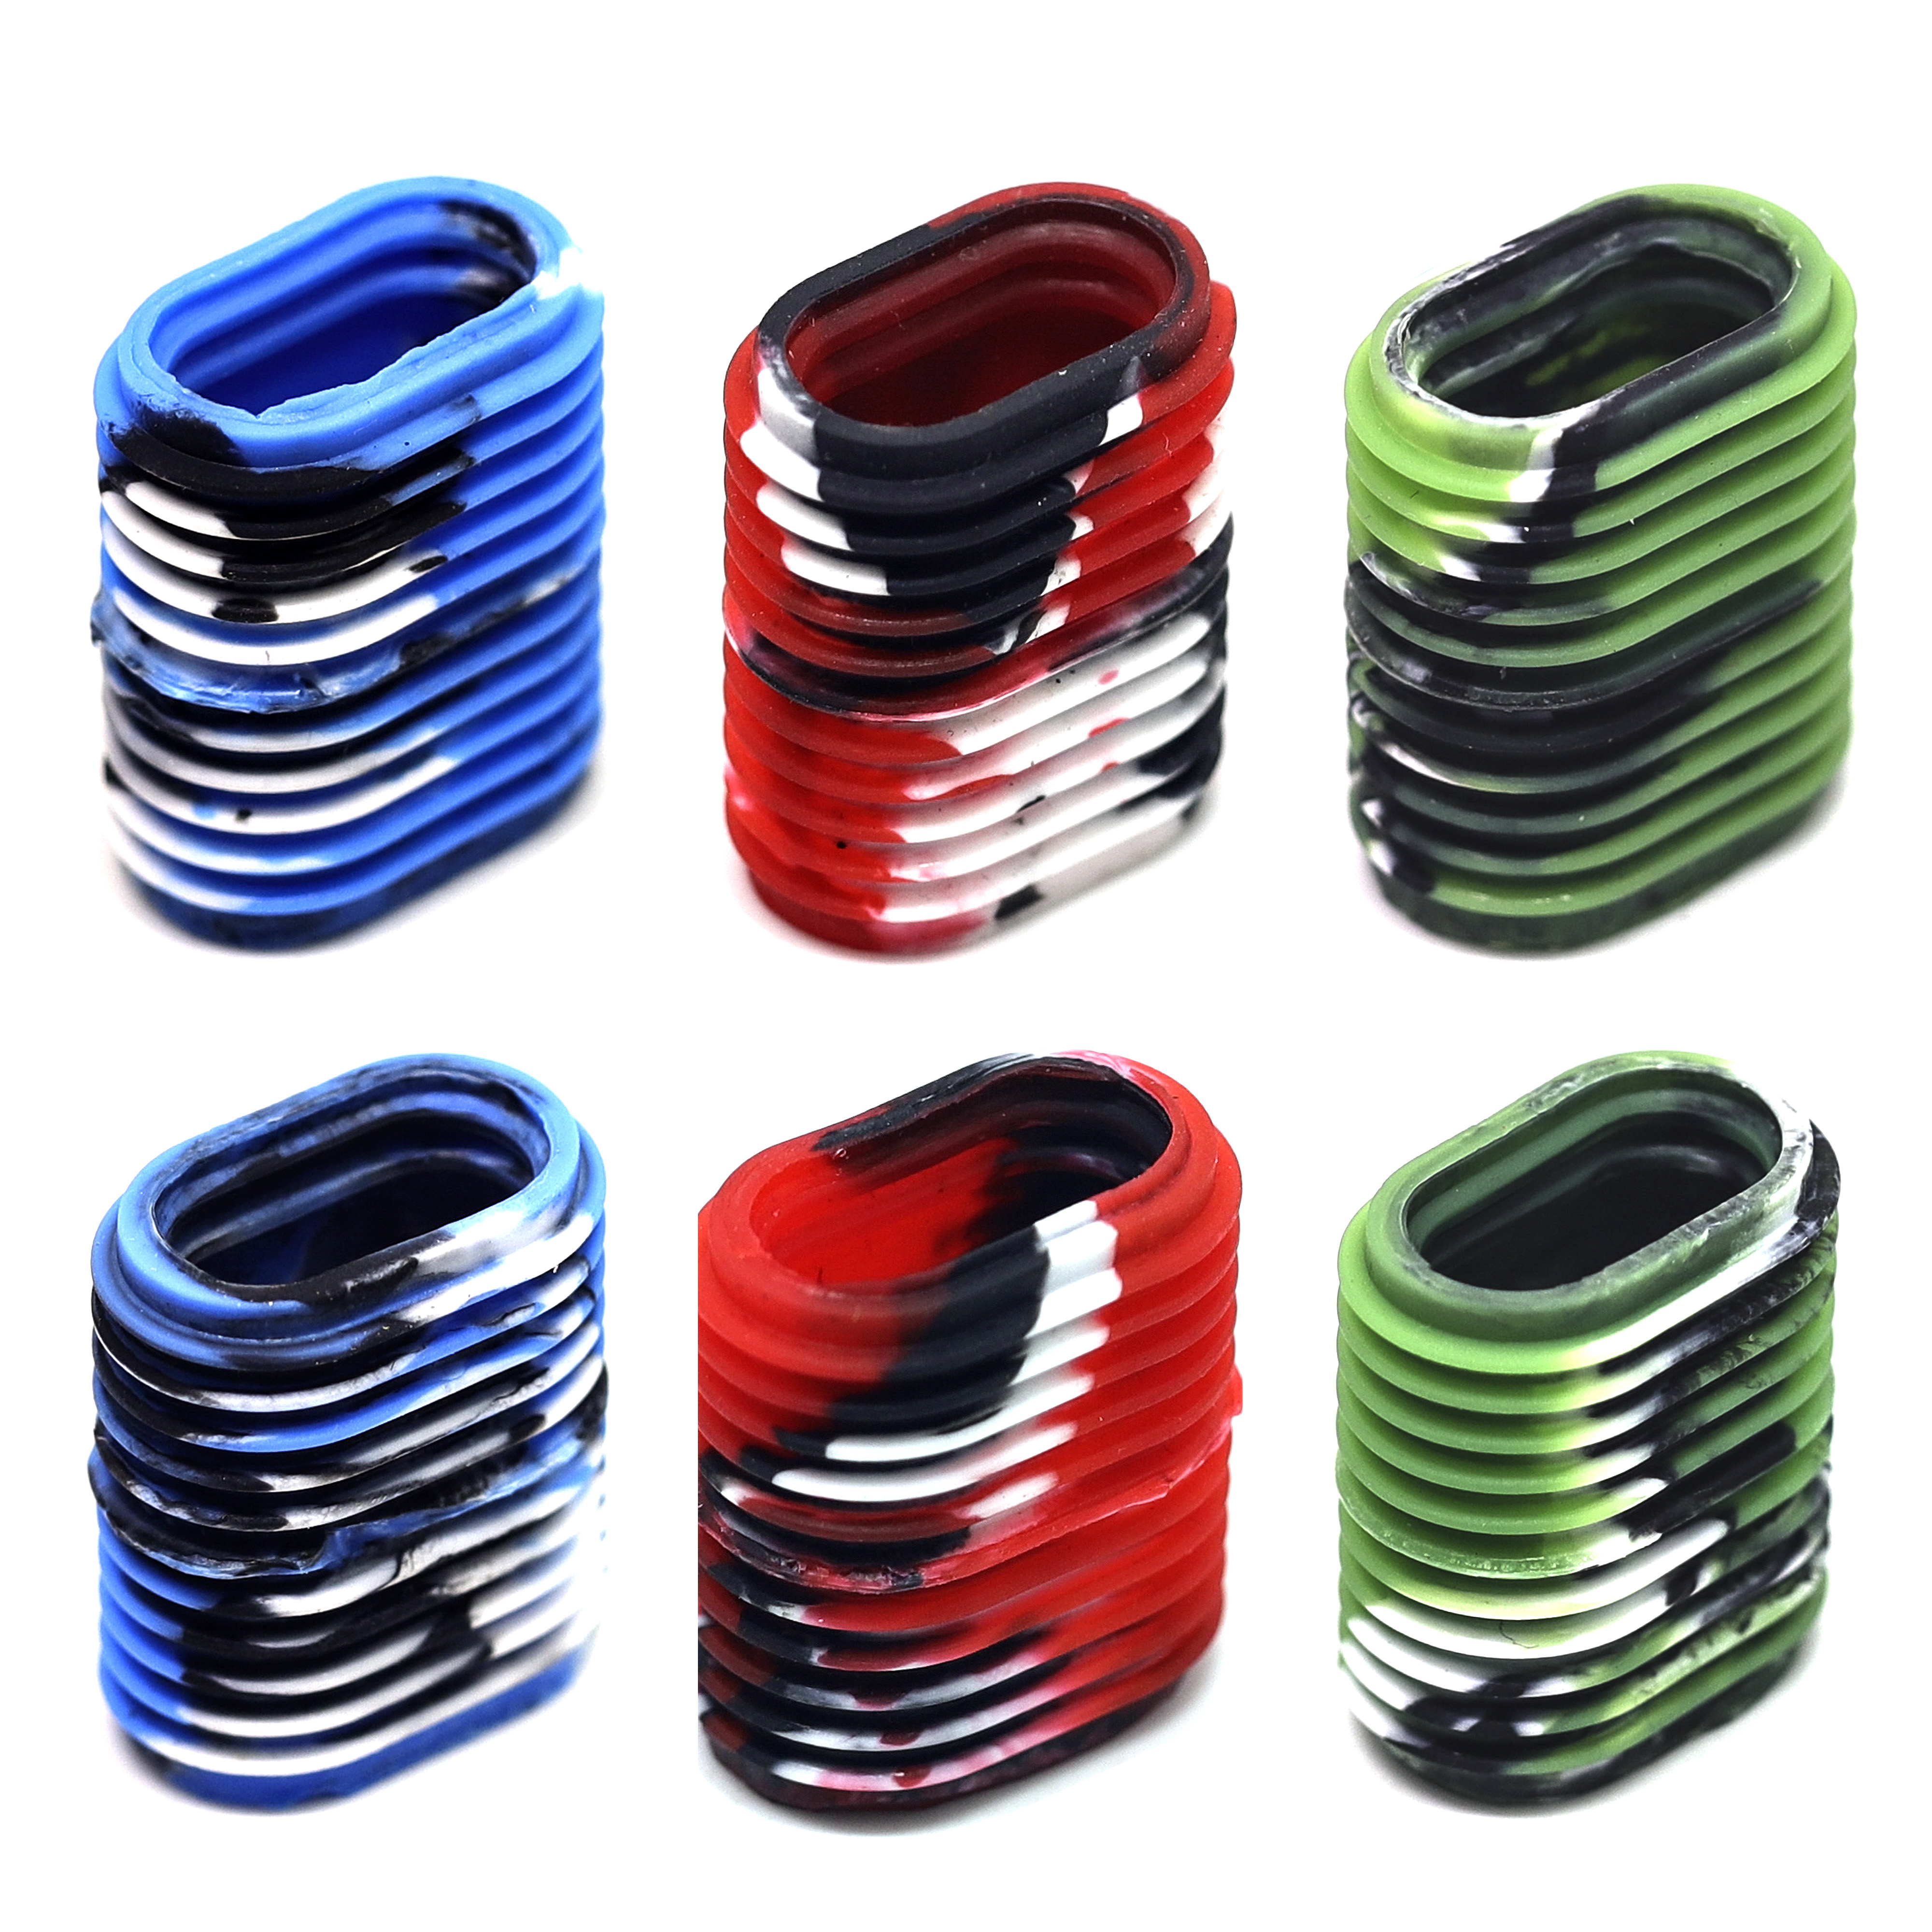 SAMSFX Cover-Knobs Reel-Grip FISHING Optional of 6PCS Ergonomic Non-Slip Multicolor title=